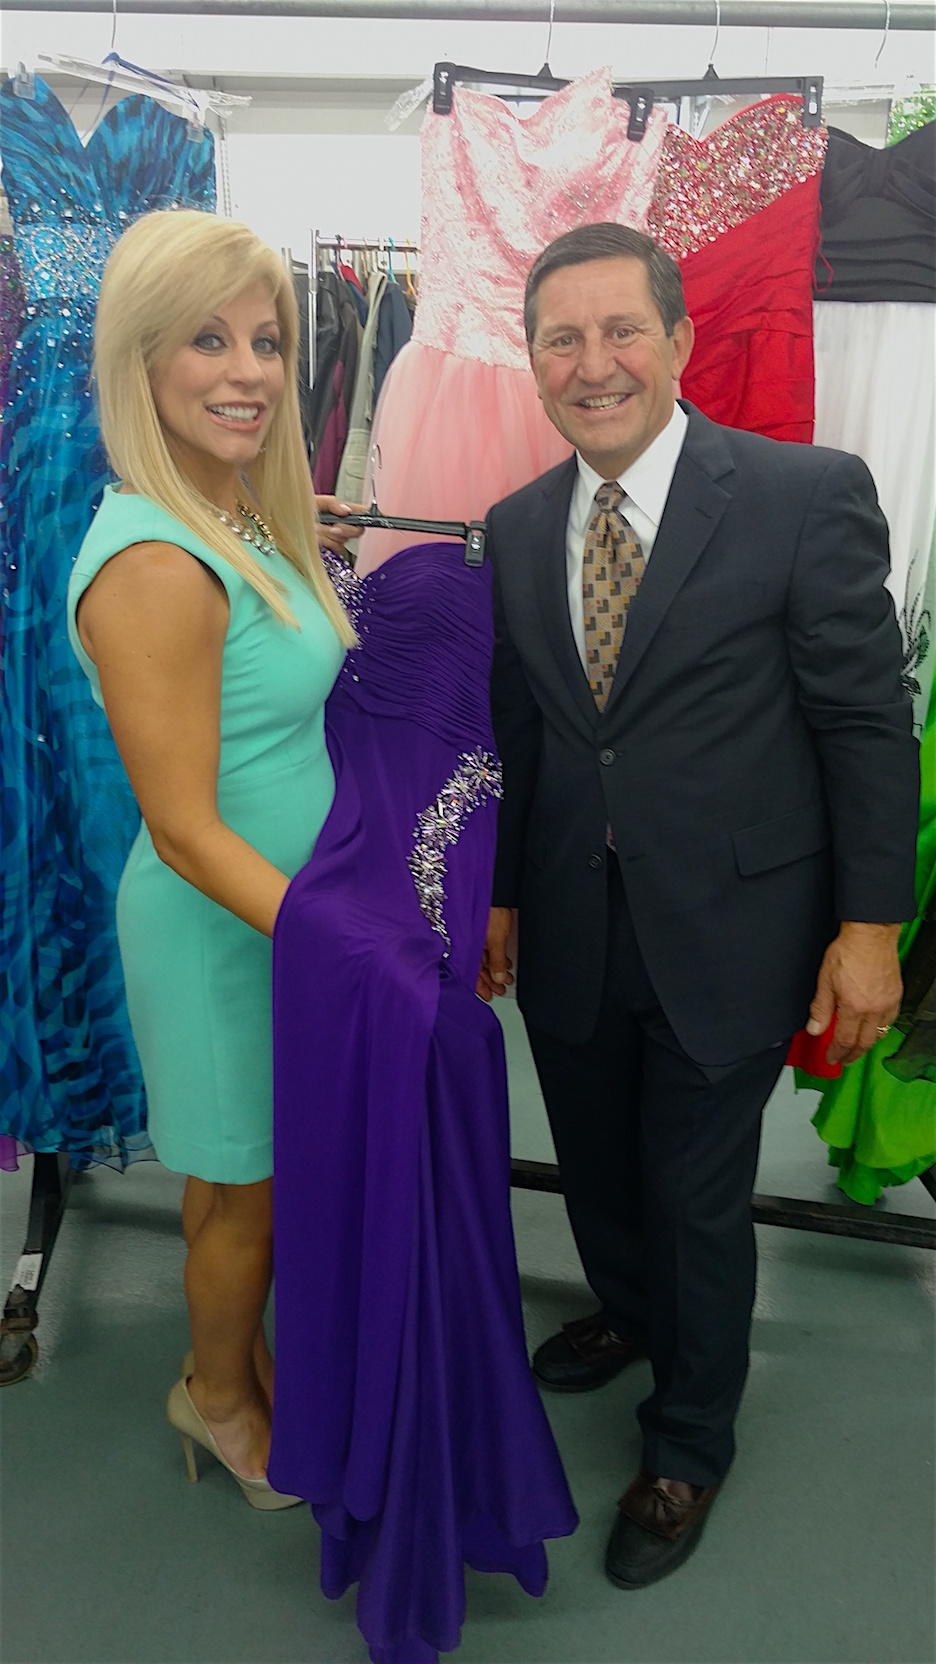 Who Buys Used Prom Dresses In Buffalo Ny - Homecoming Prom Dresses